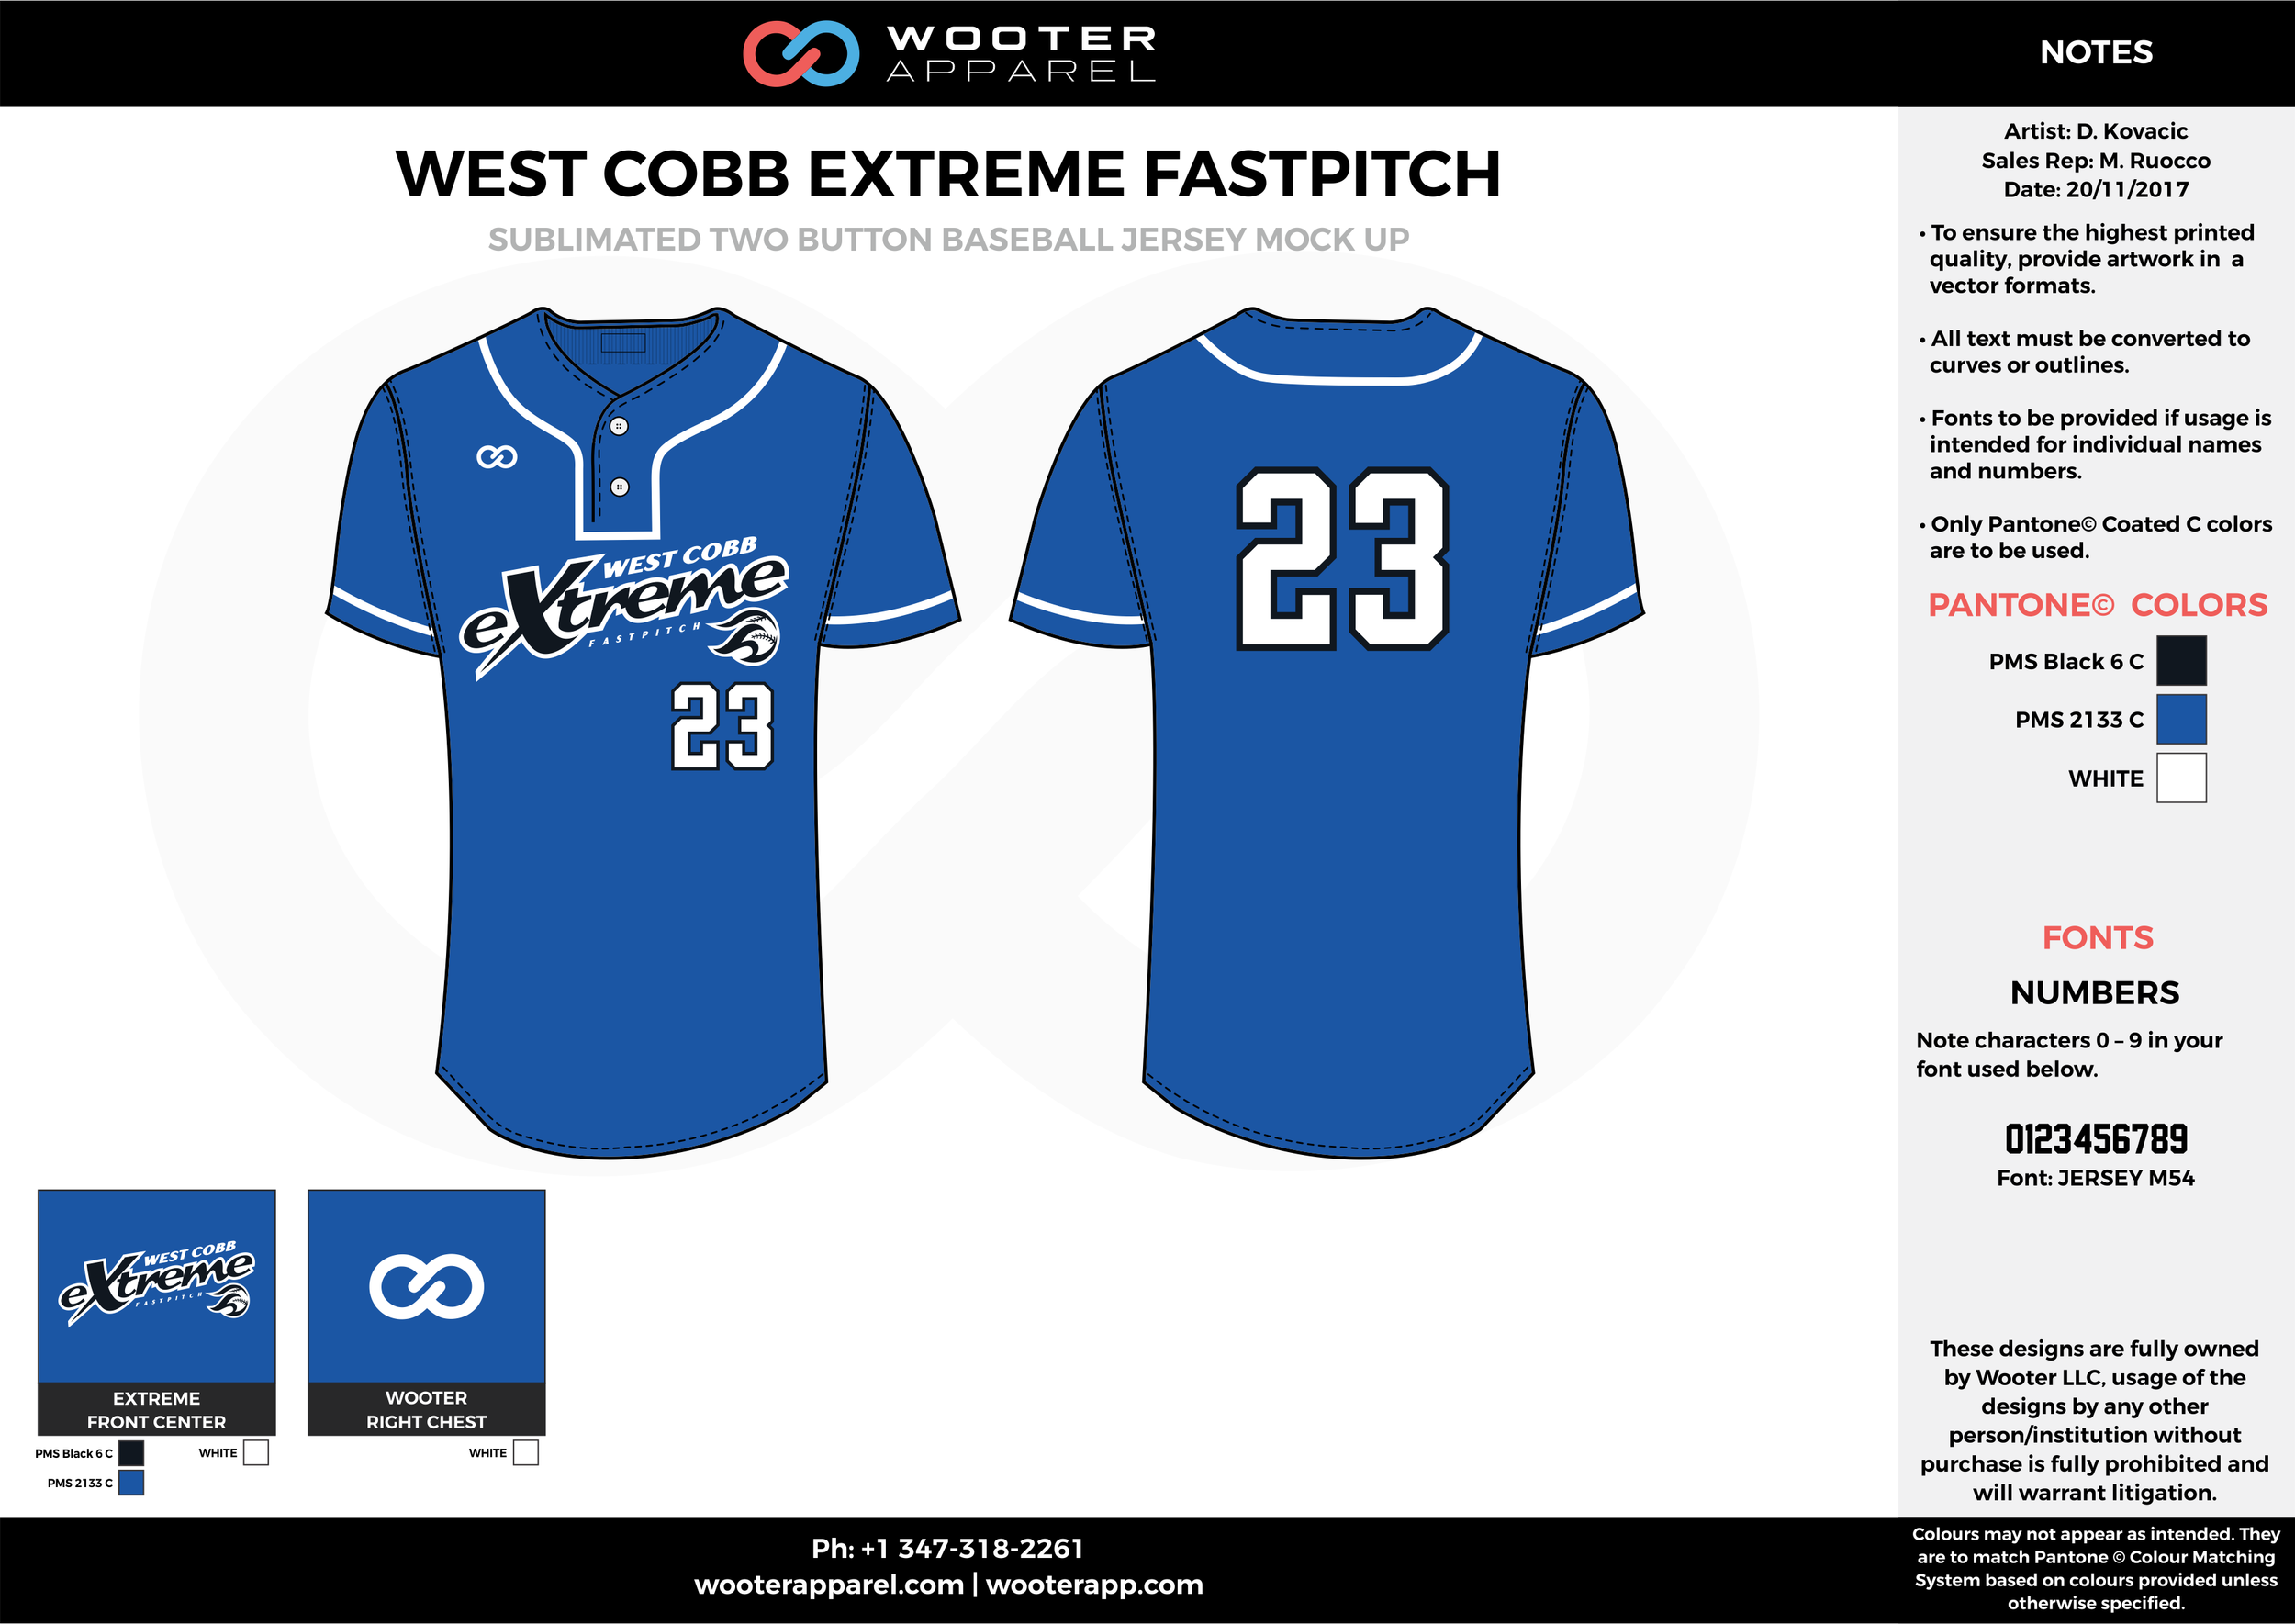 WEST COBB EXTREME FASTPITCH blue black white baseball uniforms jerseys tops